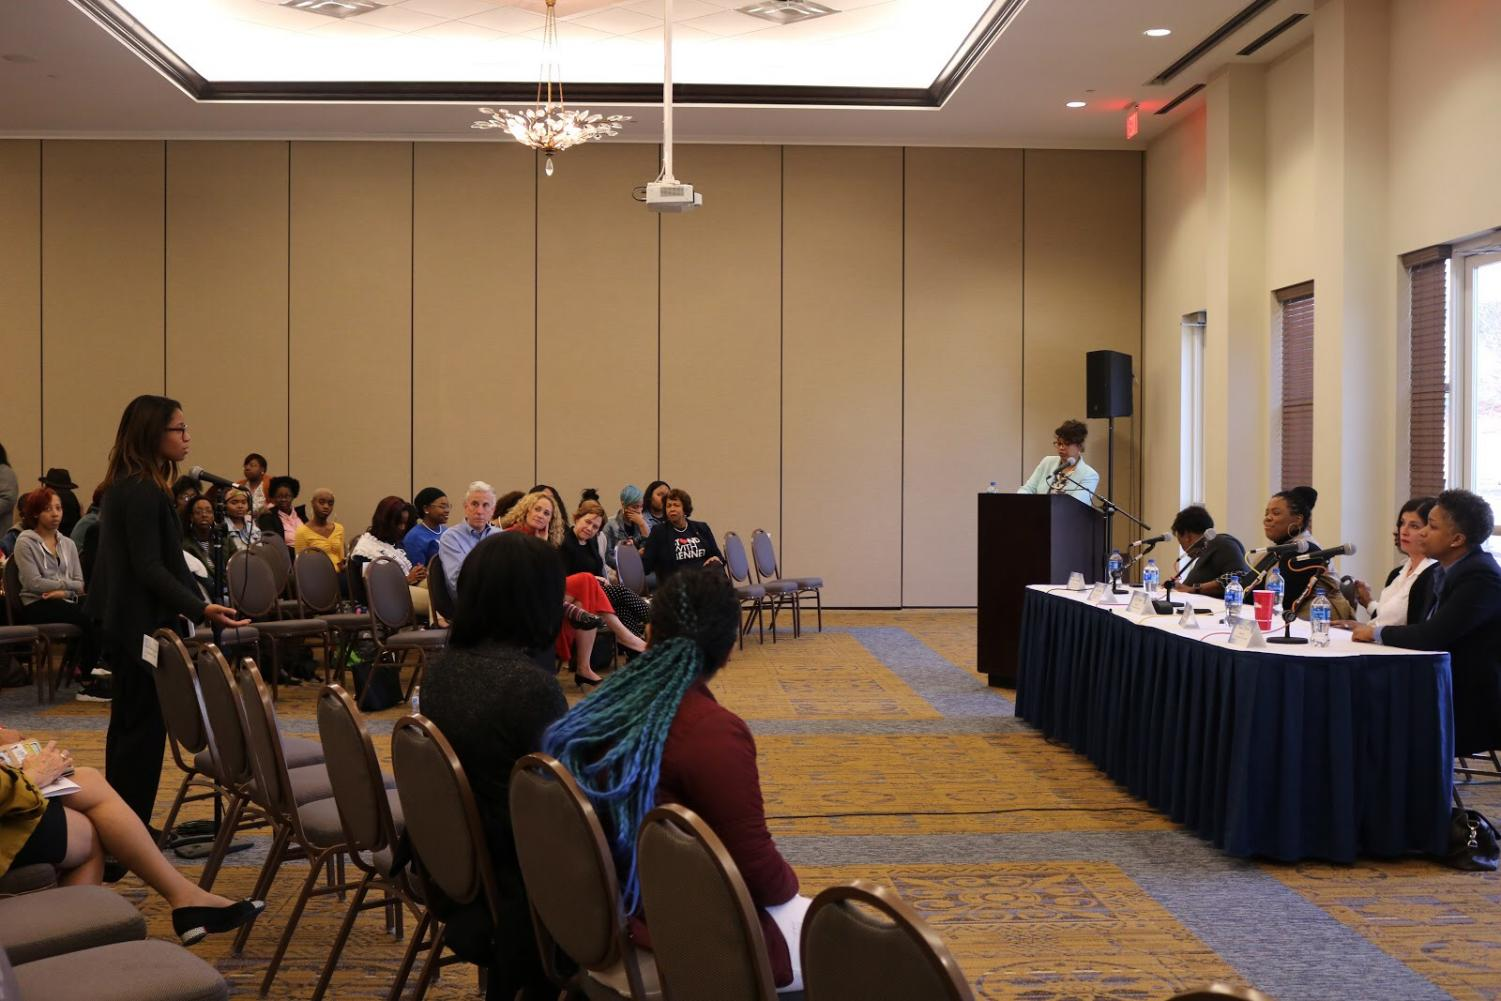 Branch speaks with panelists during the question and answer portion of the Women In Entrepreneurship panel.